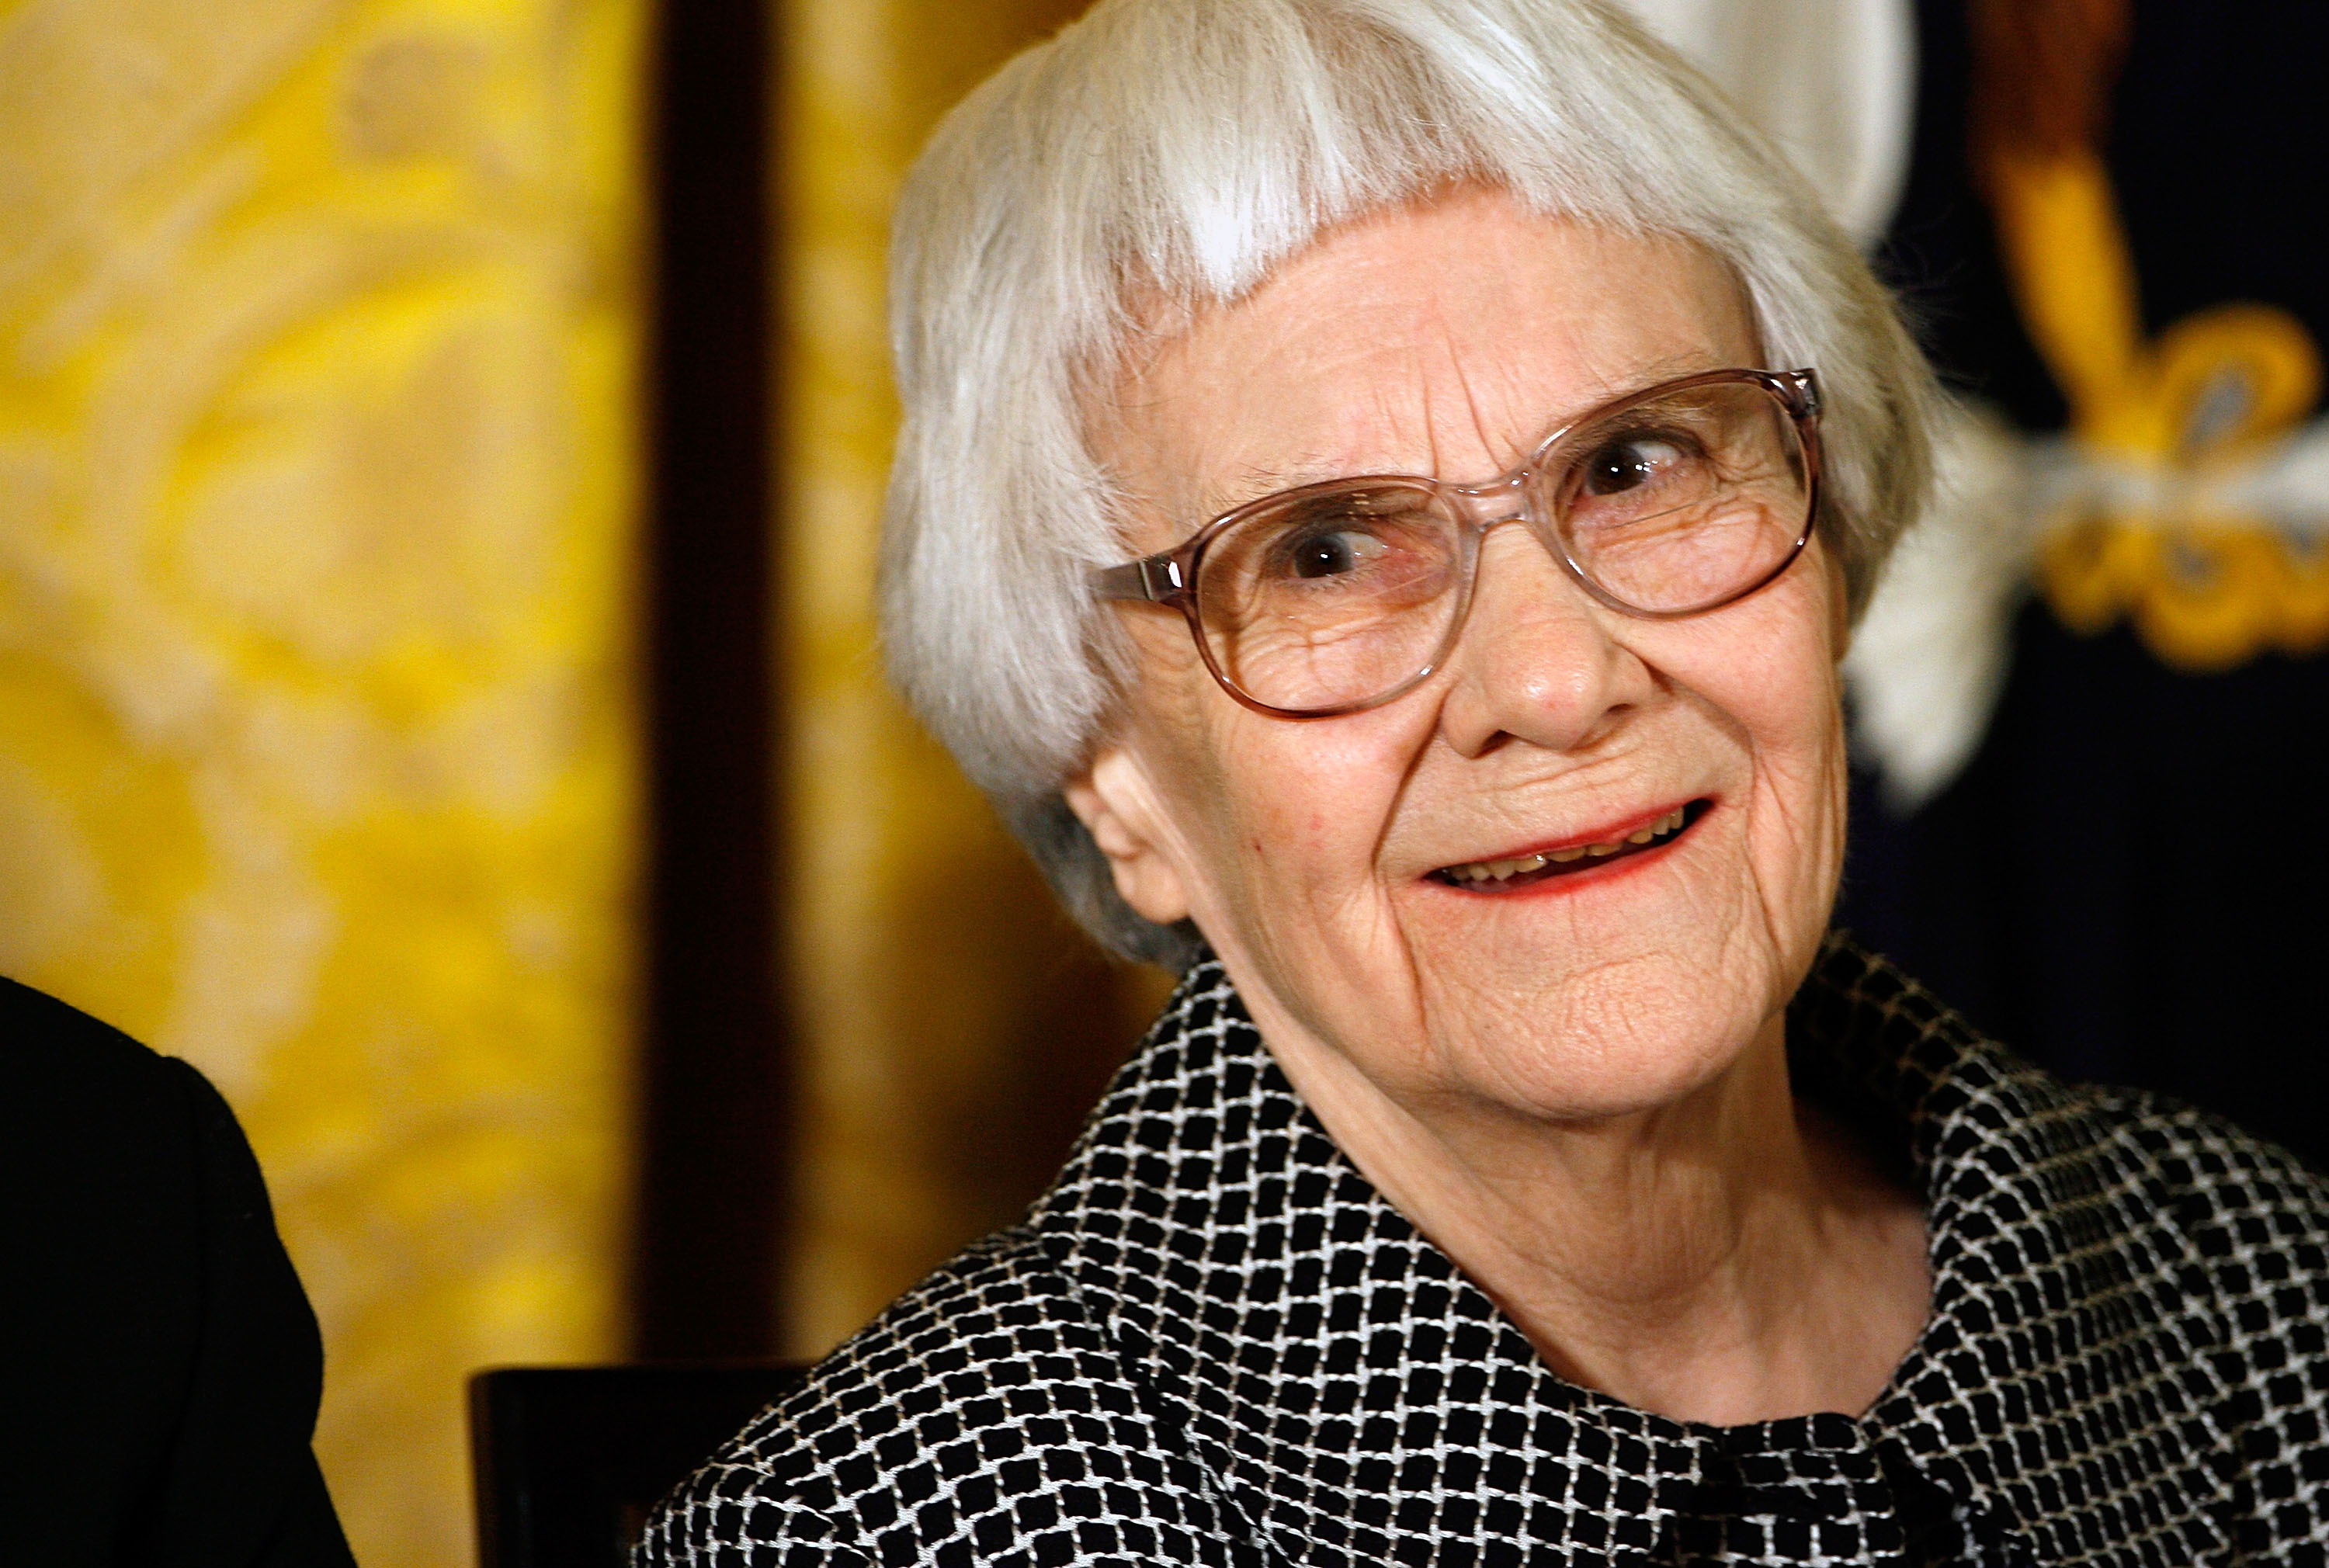 Pulitzer Prize winner and 'To Kill A Mockingbird' author Harper Lee smiles before receiving the 2007 Presidential Medal of Freedom in the East Room of the White House November 5, 2007 in Washington, DC